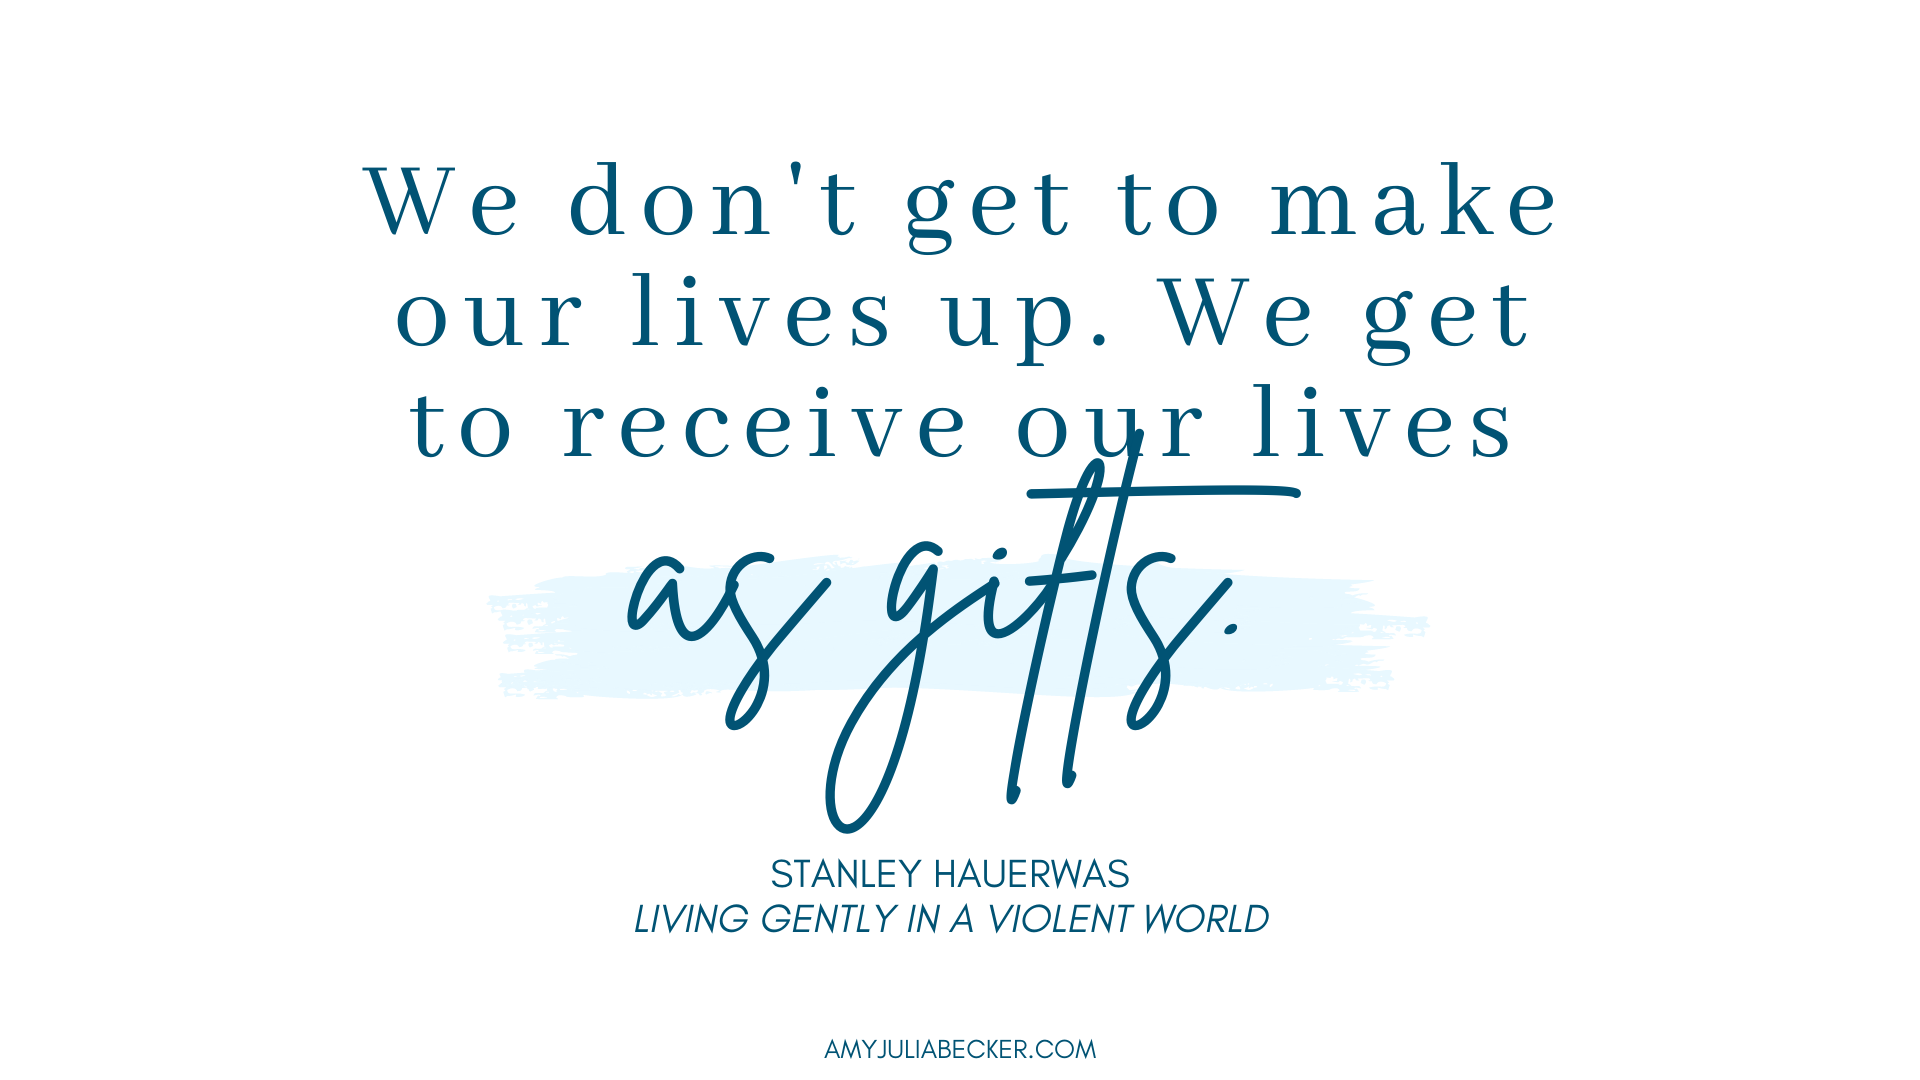 Stanley Hauerwas quote receiving life as a gift